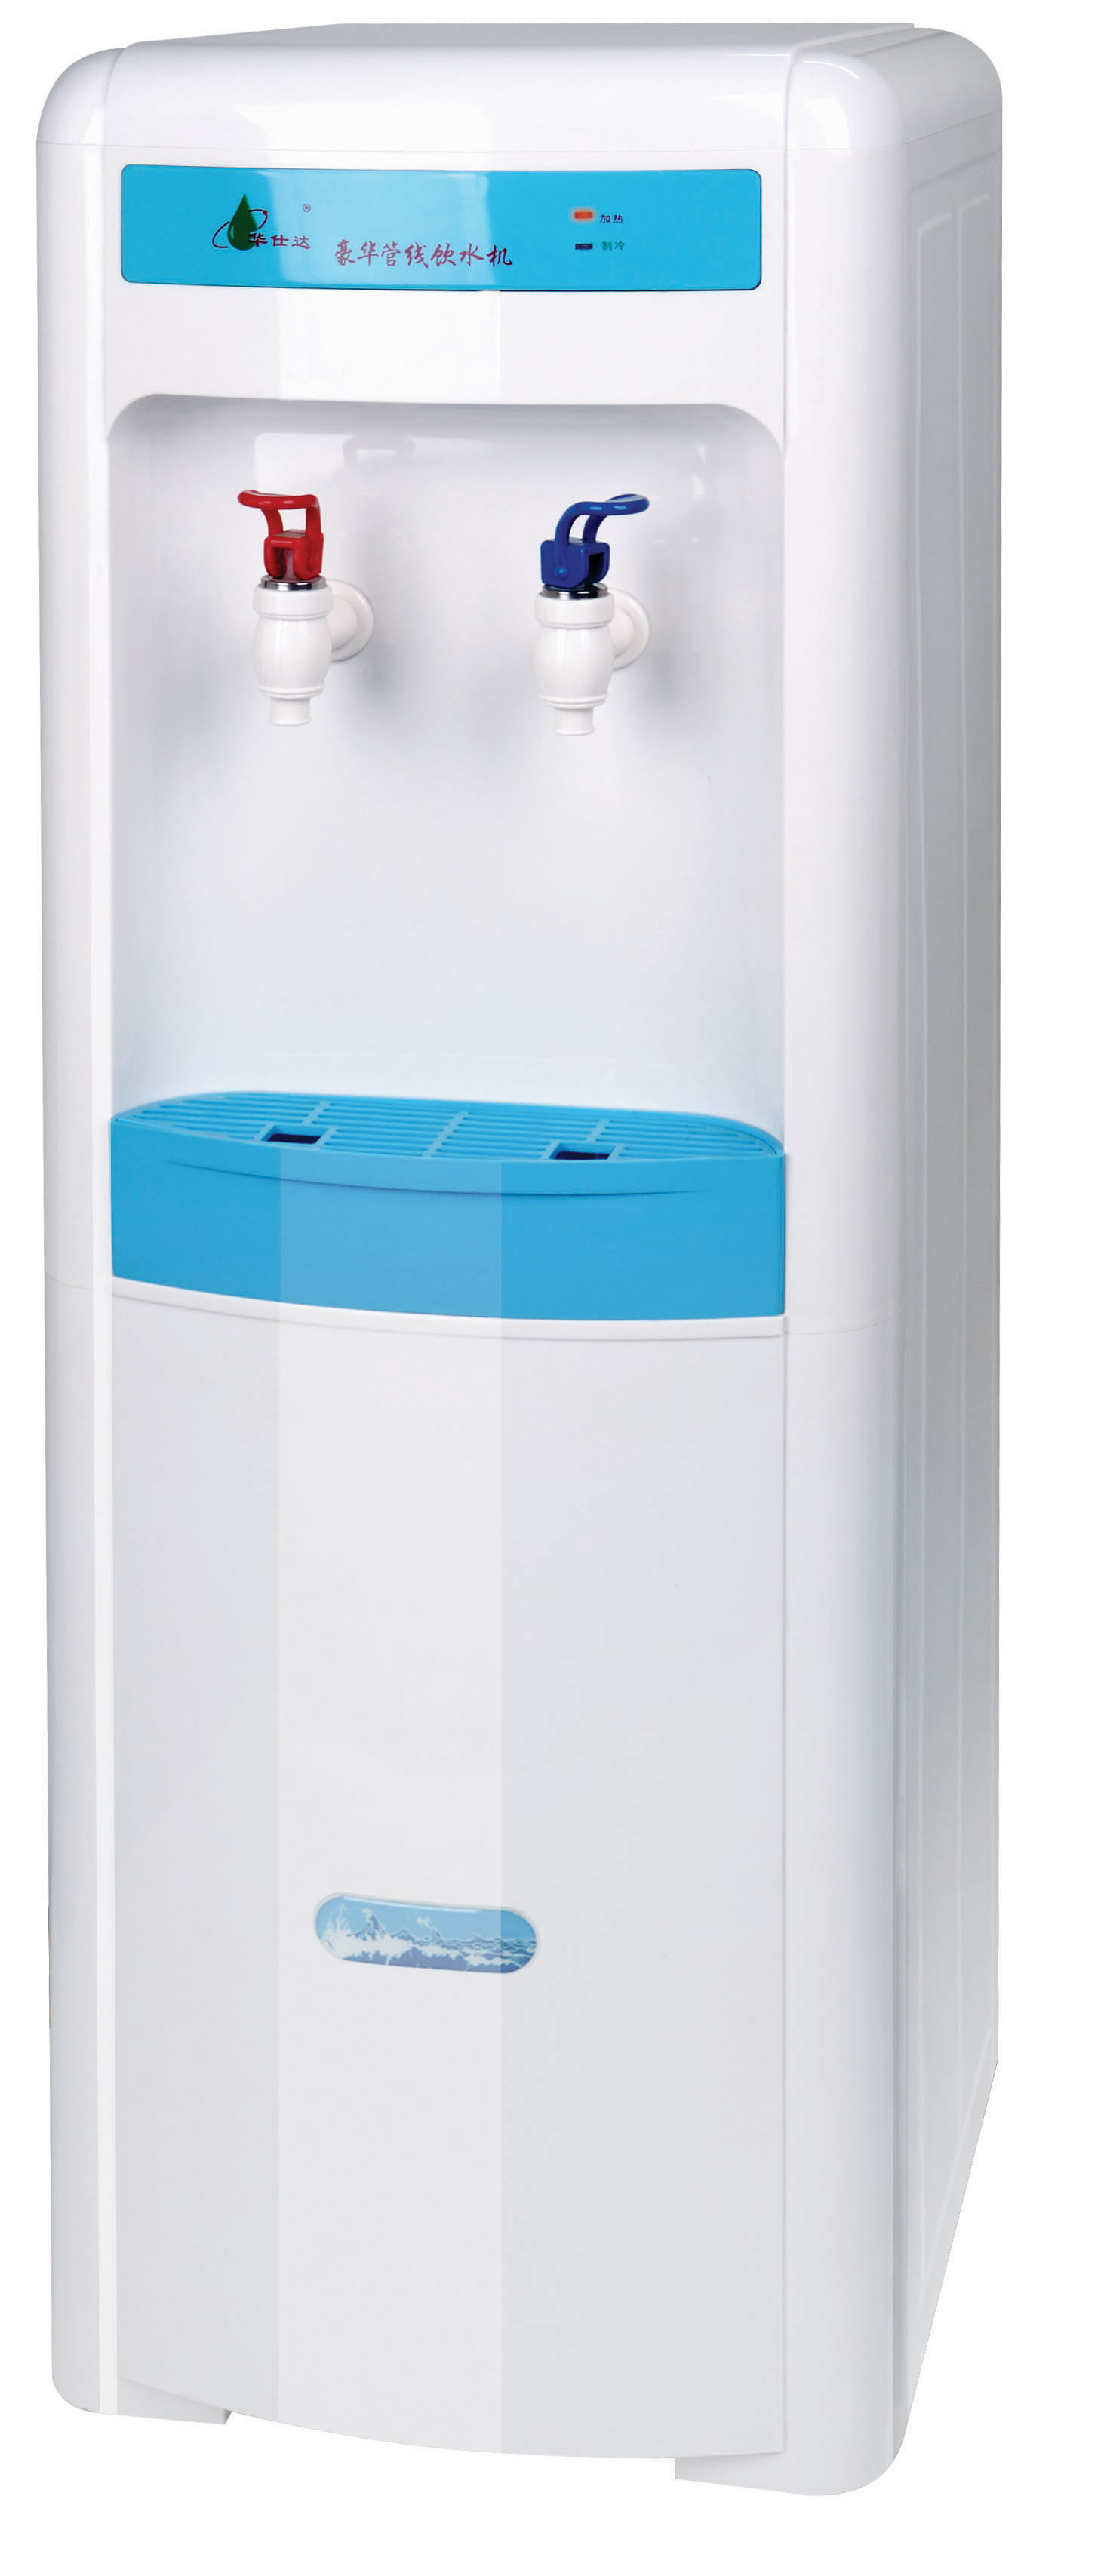 Water Purifier and Filters | Water purification